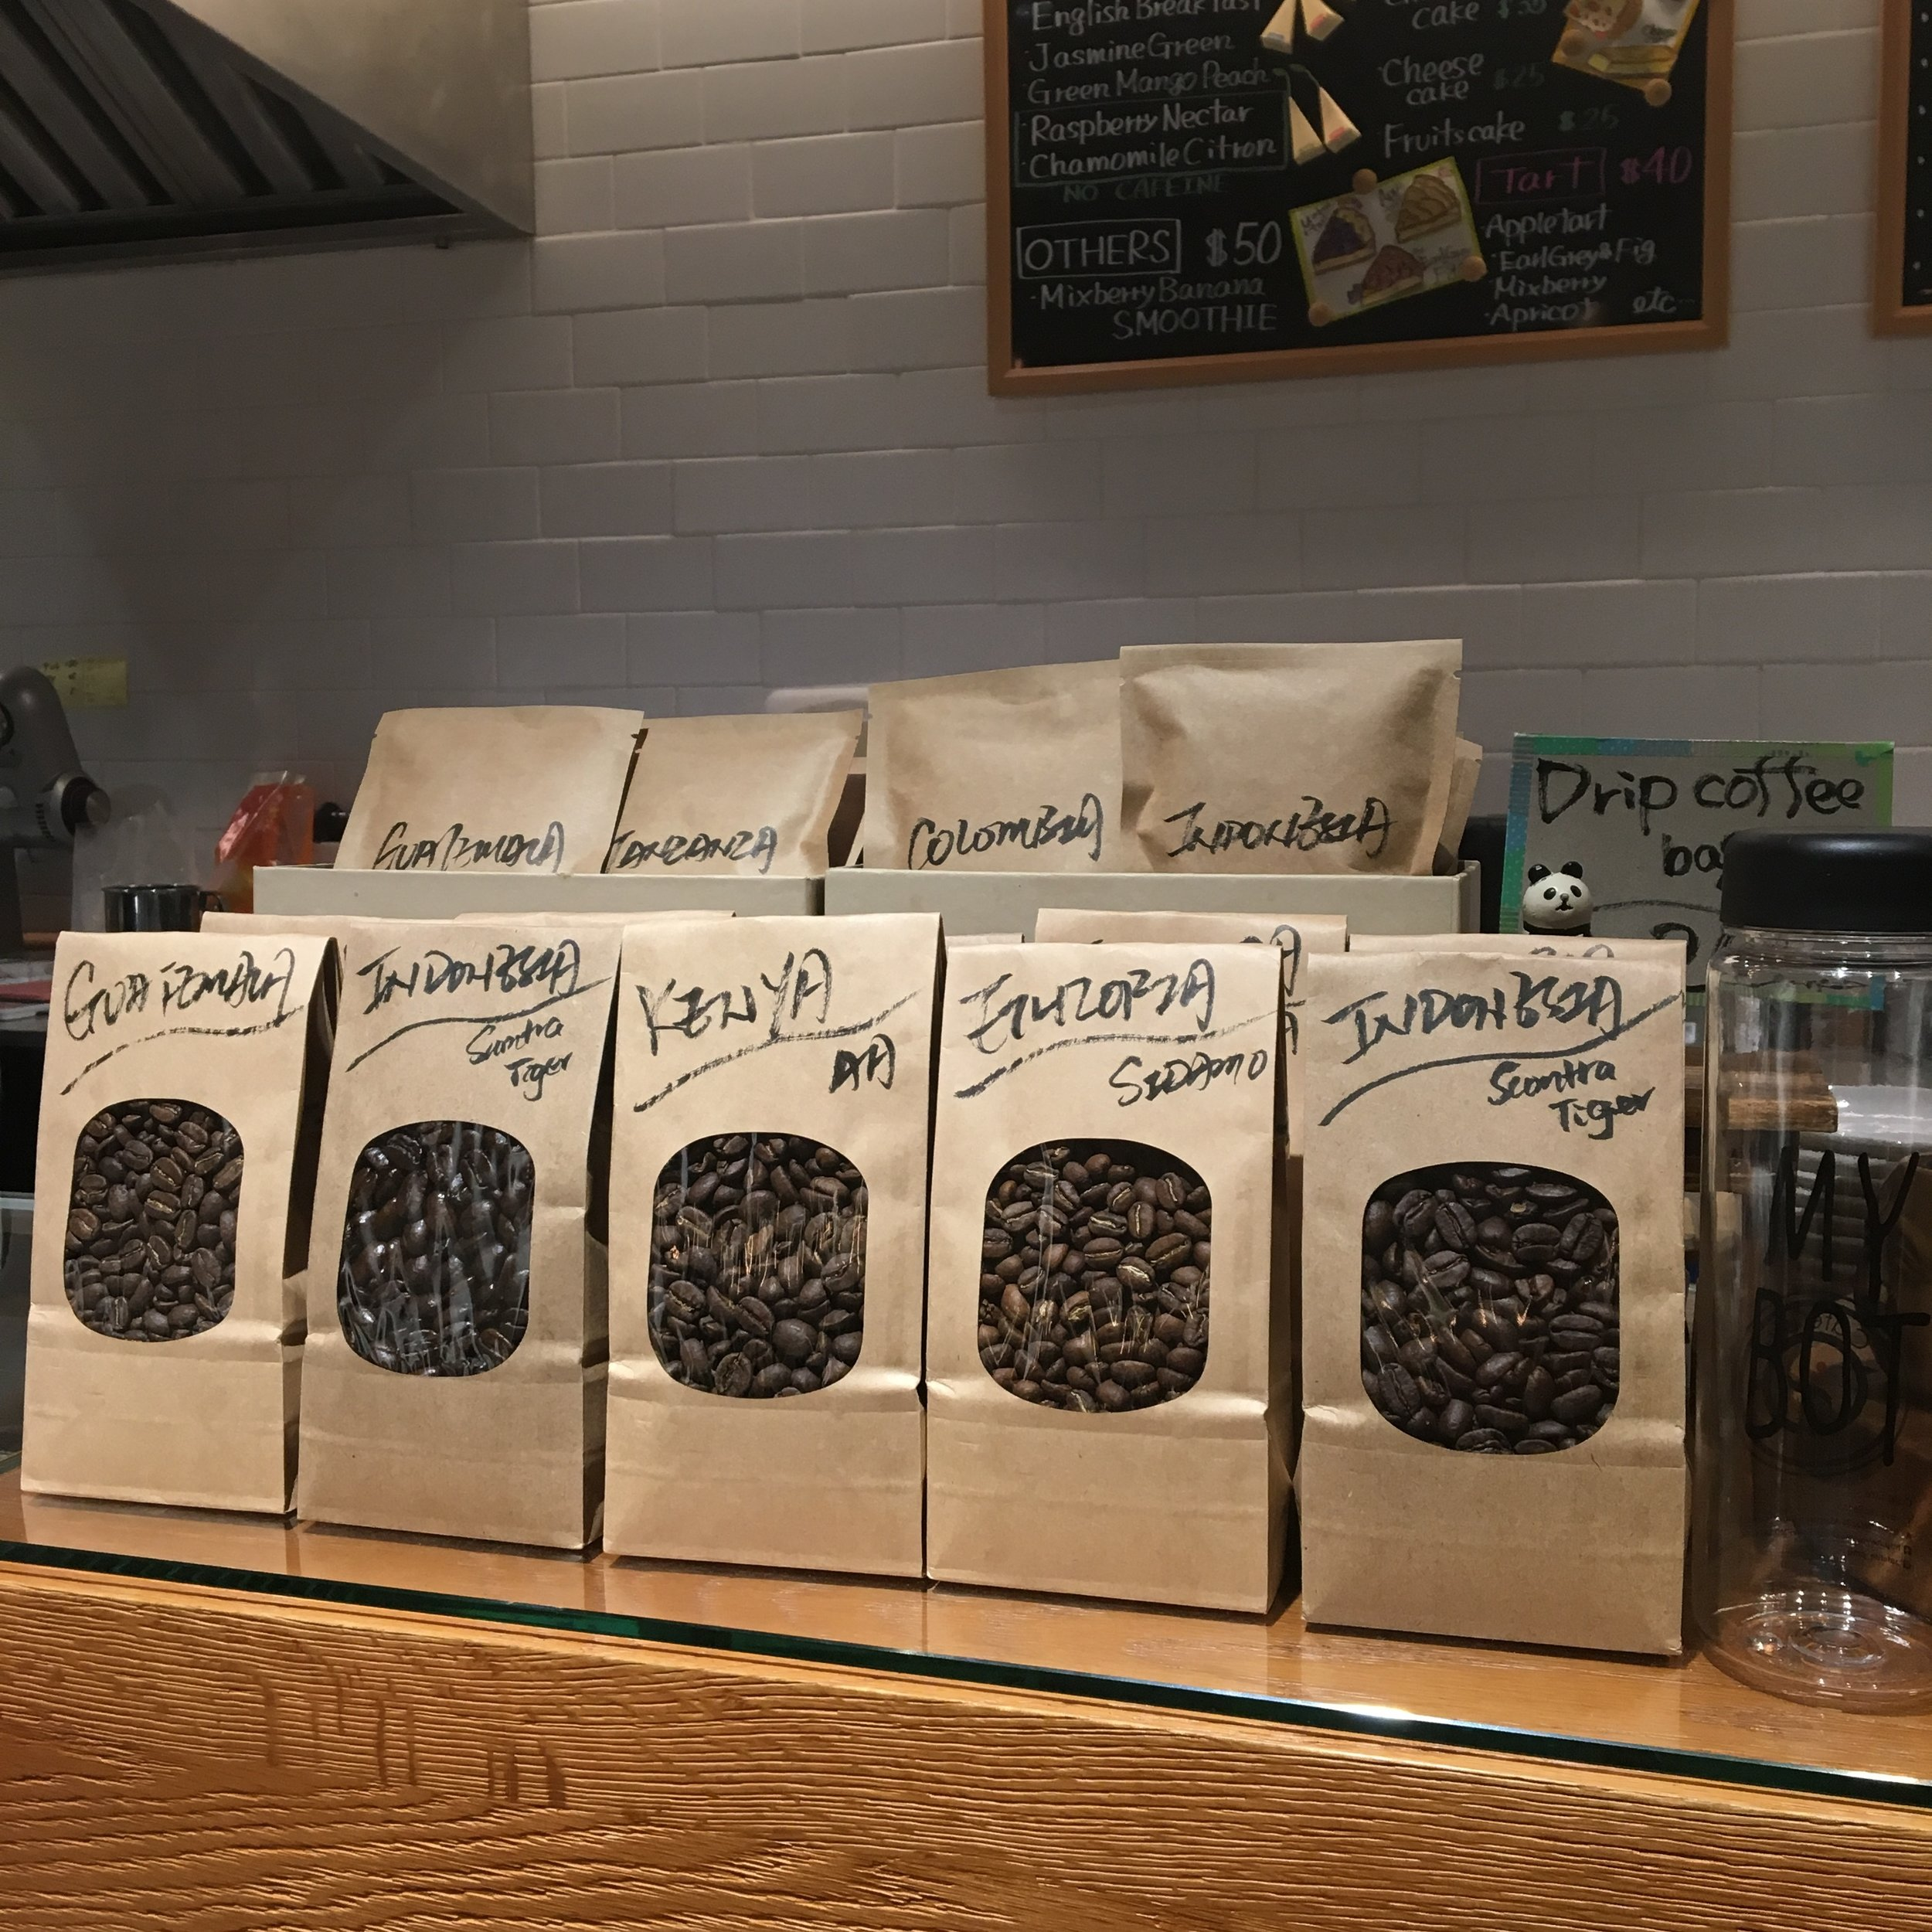 We are BIG fan of coffee here at Innovation Factory, cold bew from local grounds hmmm~